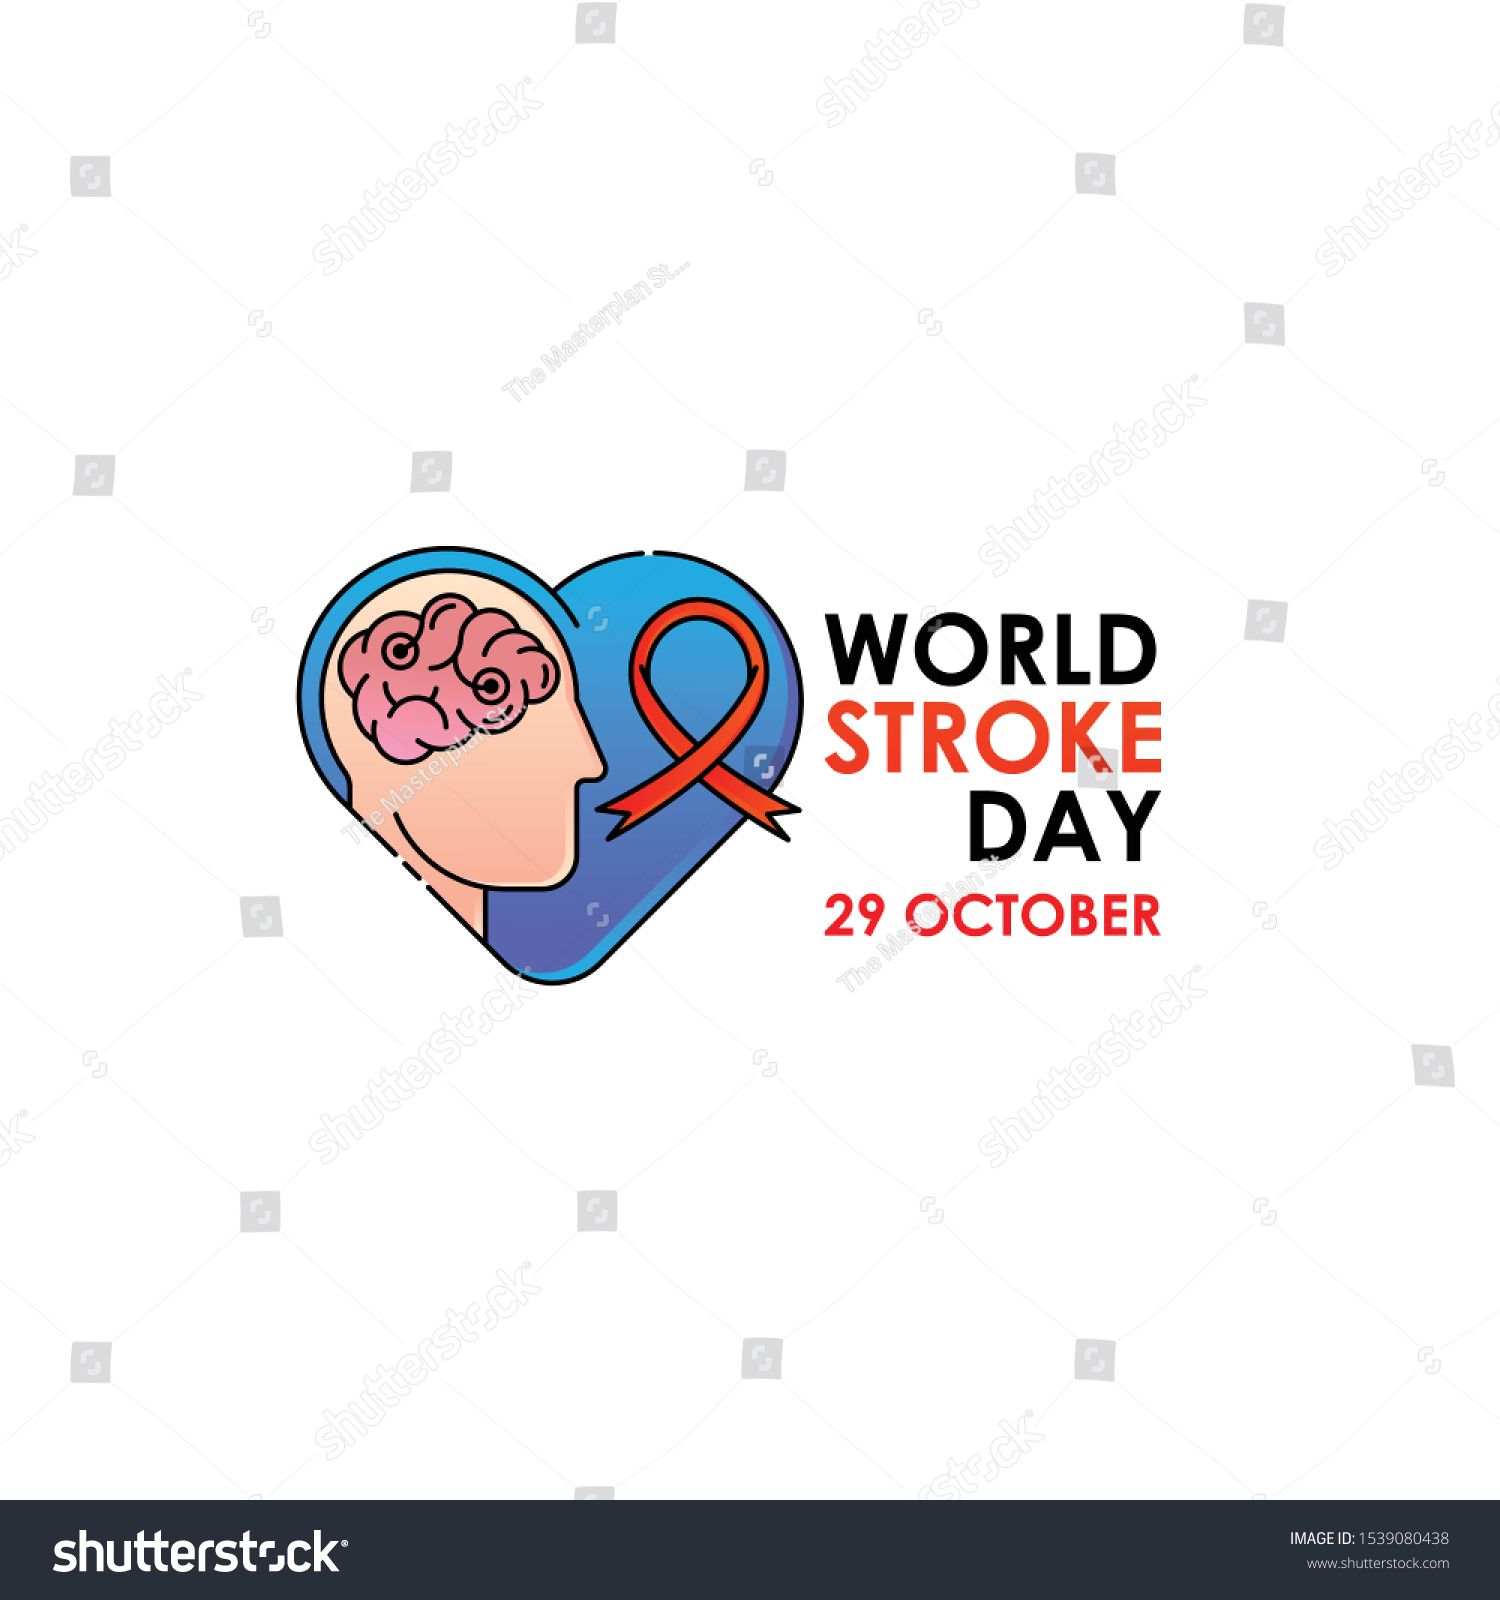 World Stroke Day Vector Logo Poster Illustration Of World Stroke Day On October 29th Health Care A In 2020 Business Card Mock Up World Stroke Day Awareness Campaign